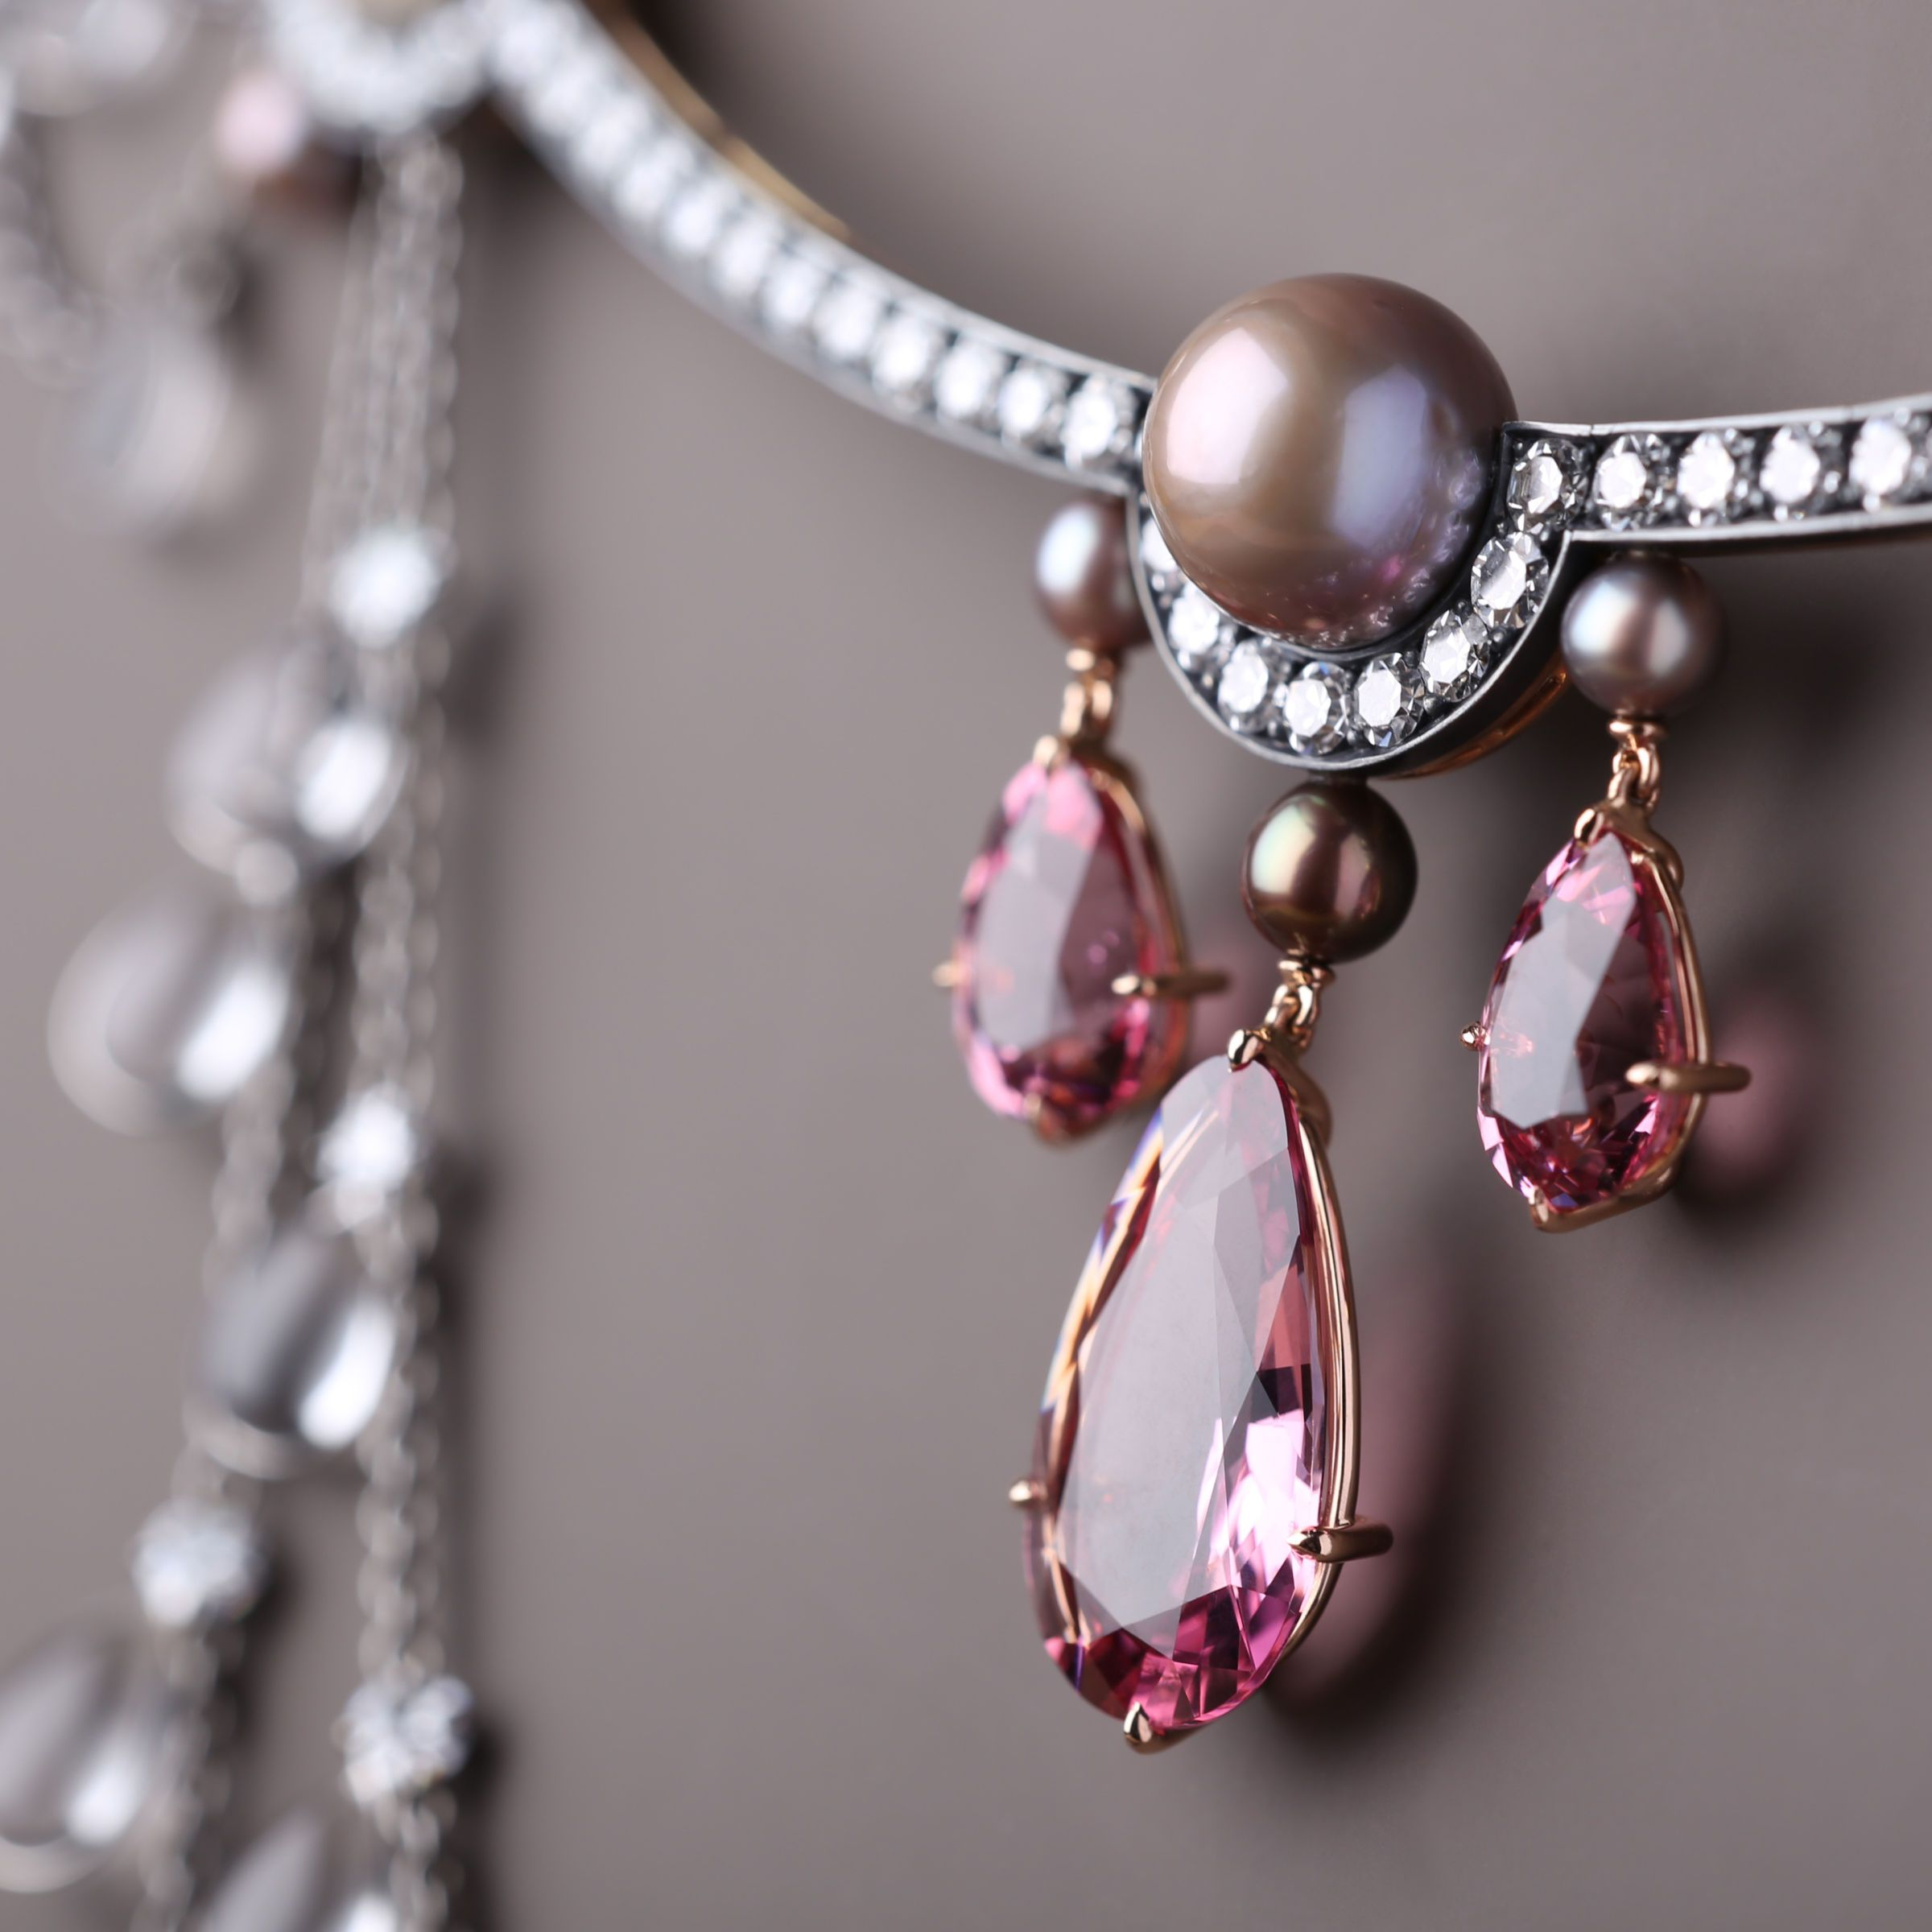 Nadia Morganthaler Necklace - Spinels, pearls and diamonds